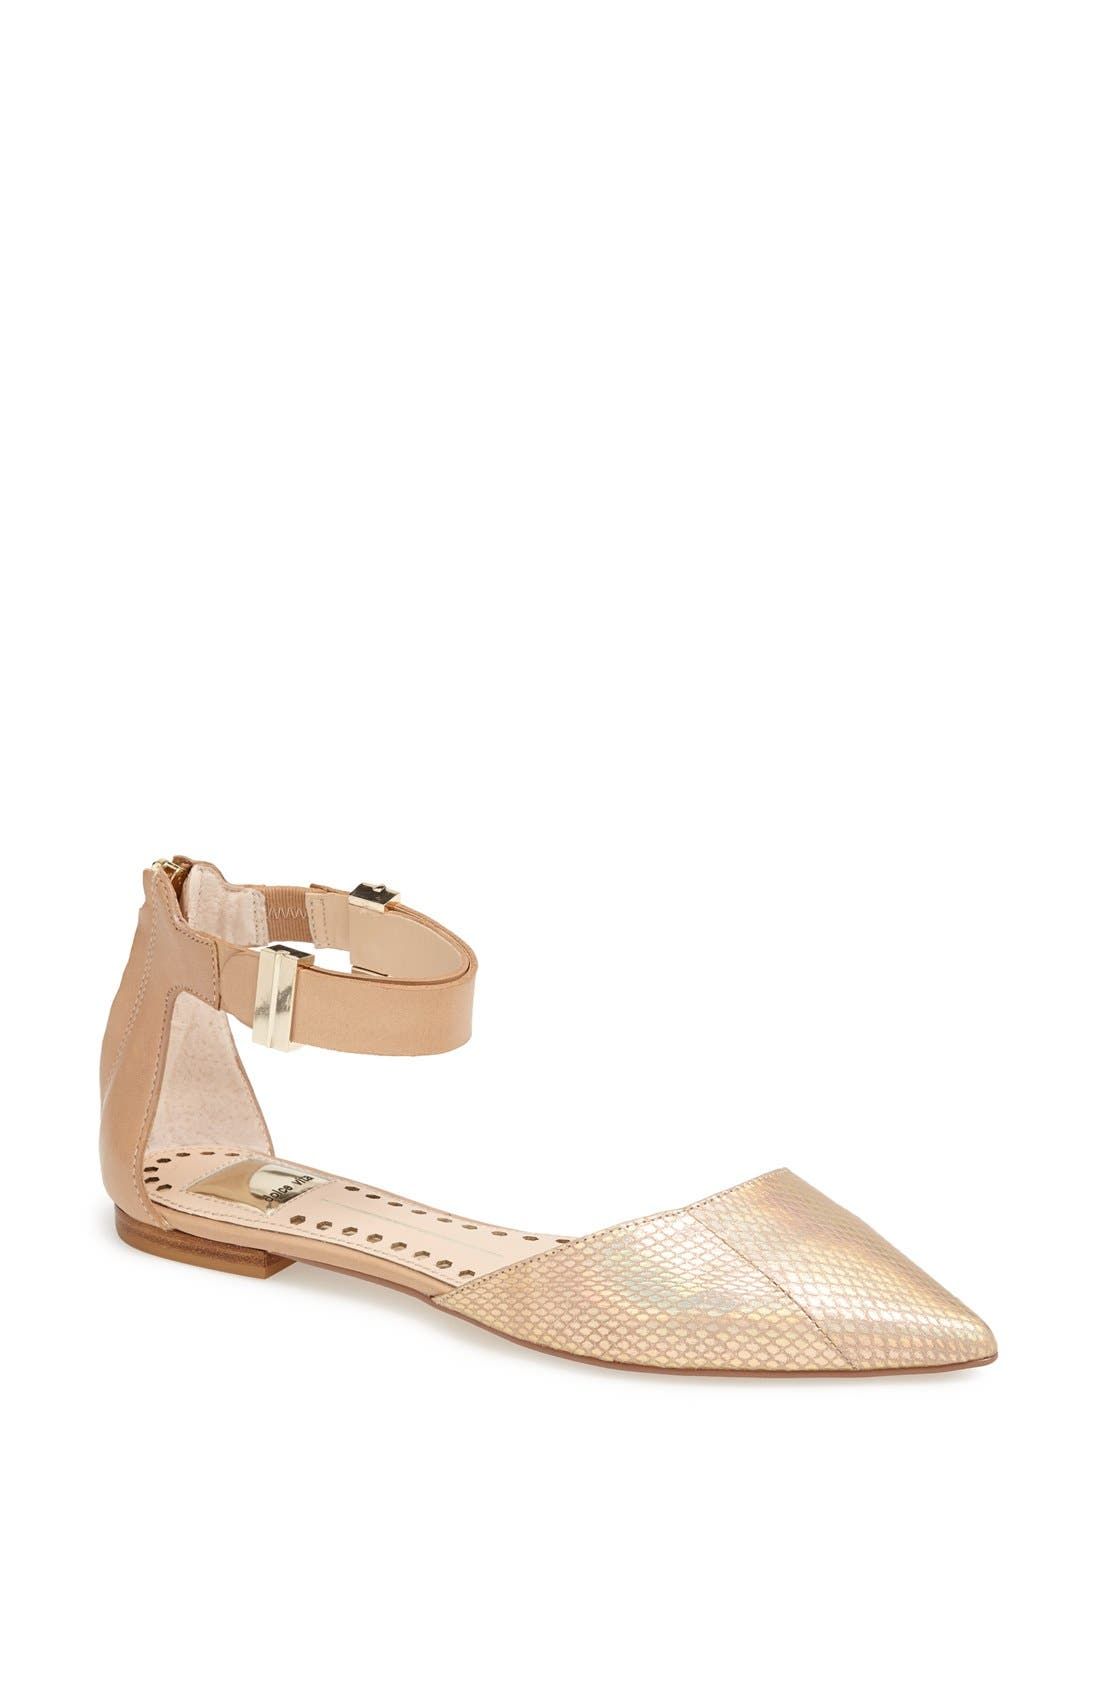 Main Image - Dolce Vita 'Agusta' Ankle Strap d'Orsay Flat